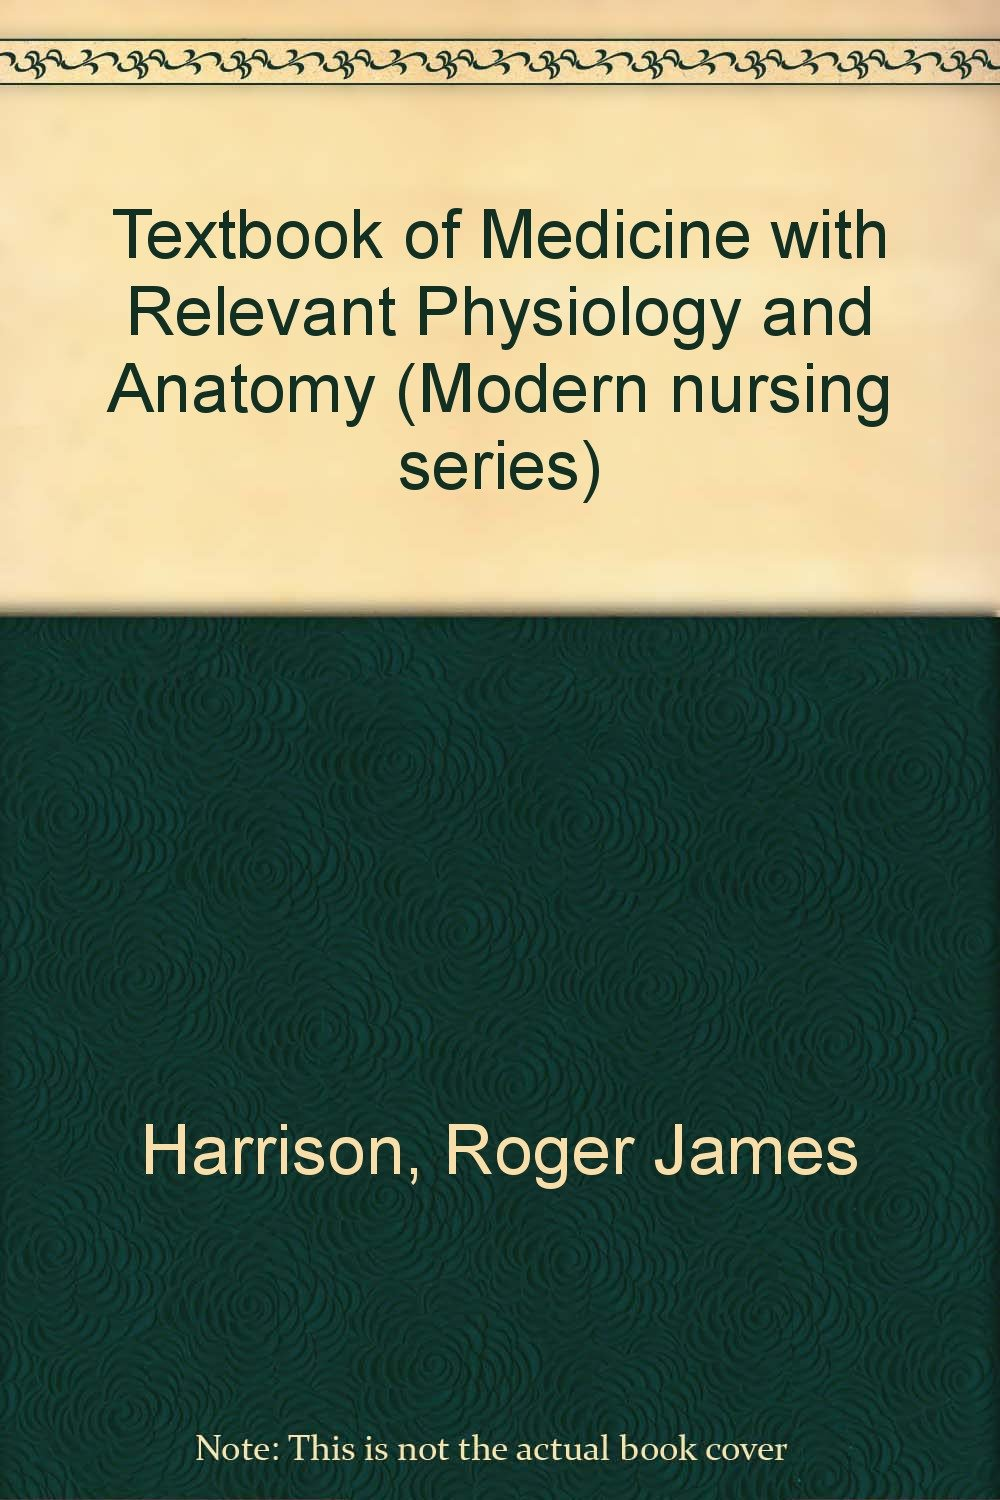 Textbook of Medicine with Relevant Physiology and Anatomy (Modern ...